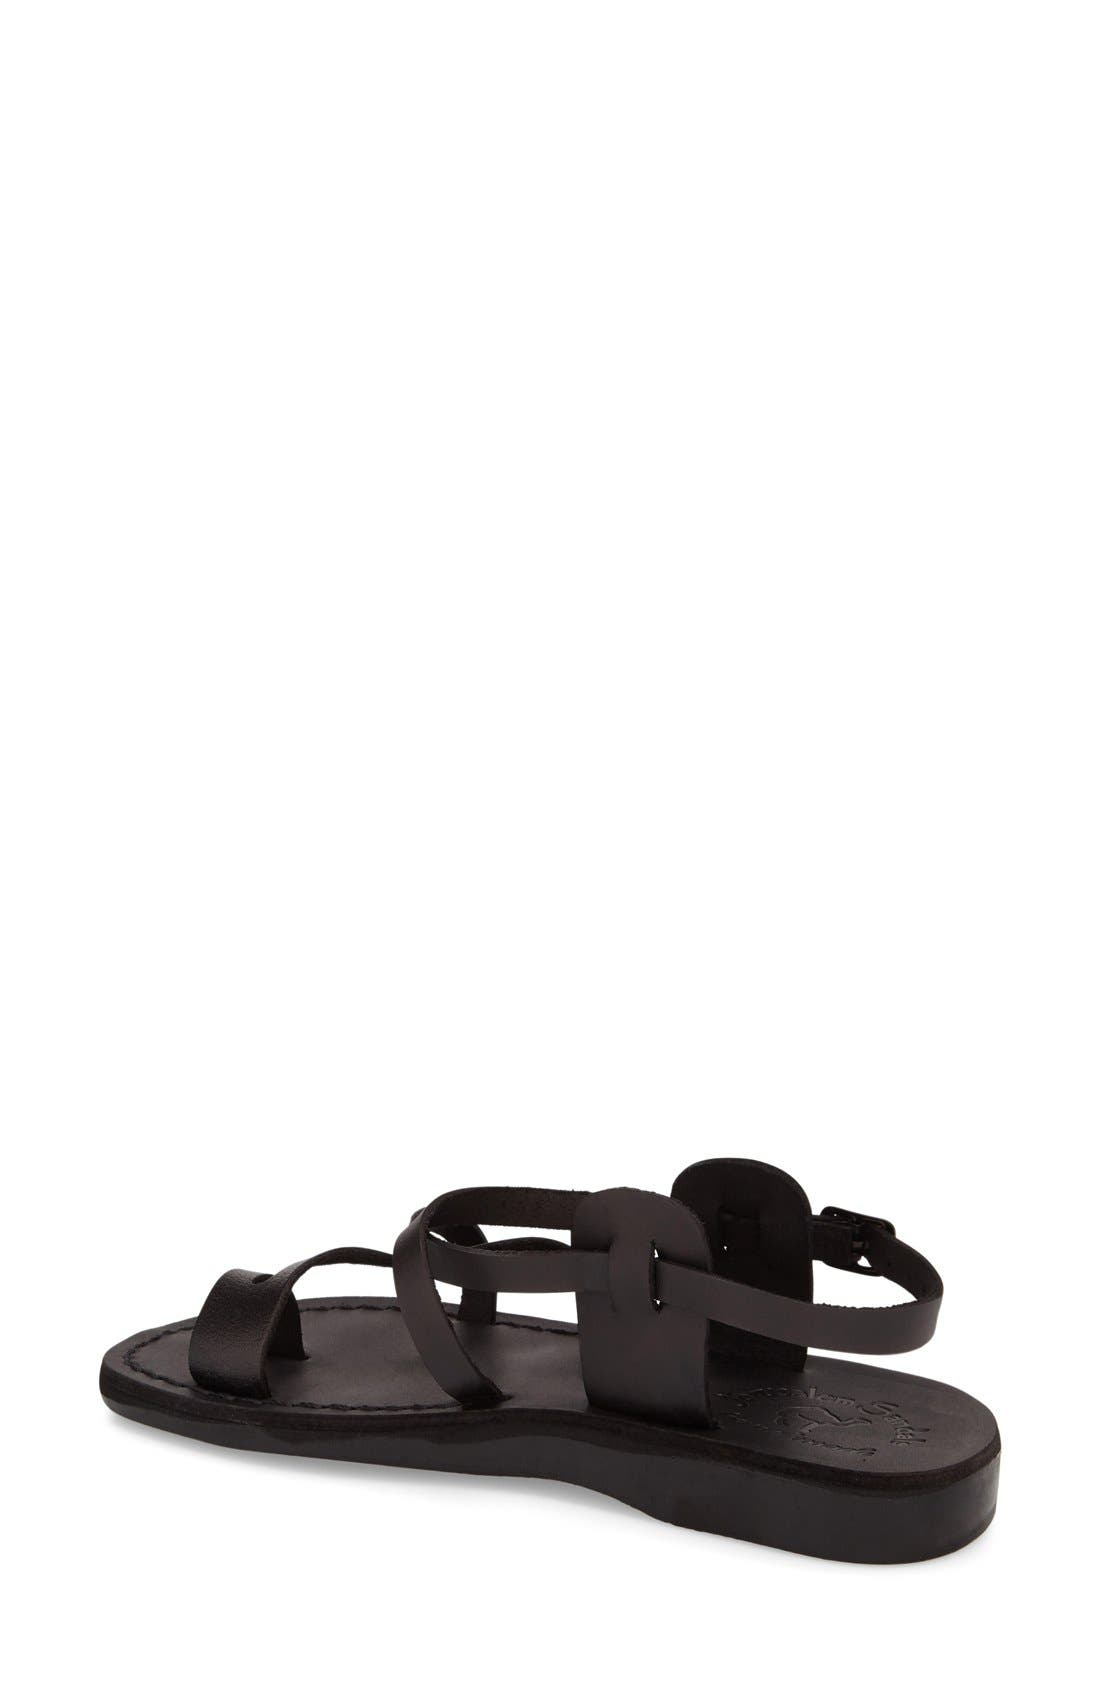 'The Good Shepard' Strappy Sandal,                             Alternate thumbnail 2, color,                             Black Leather